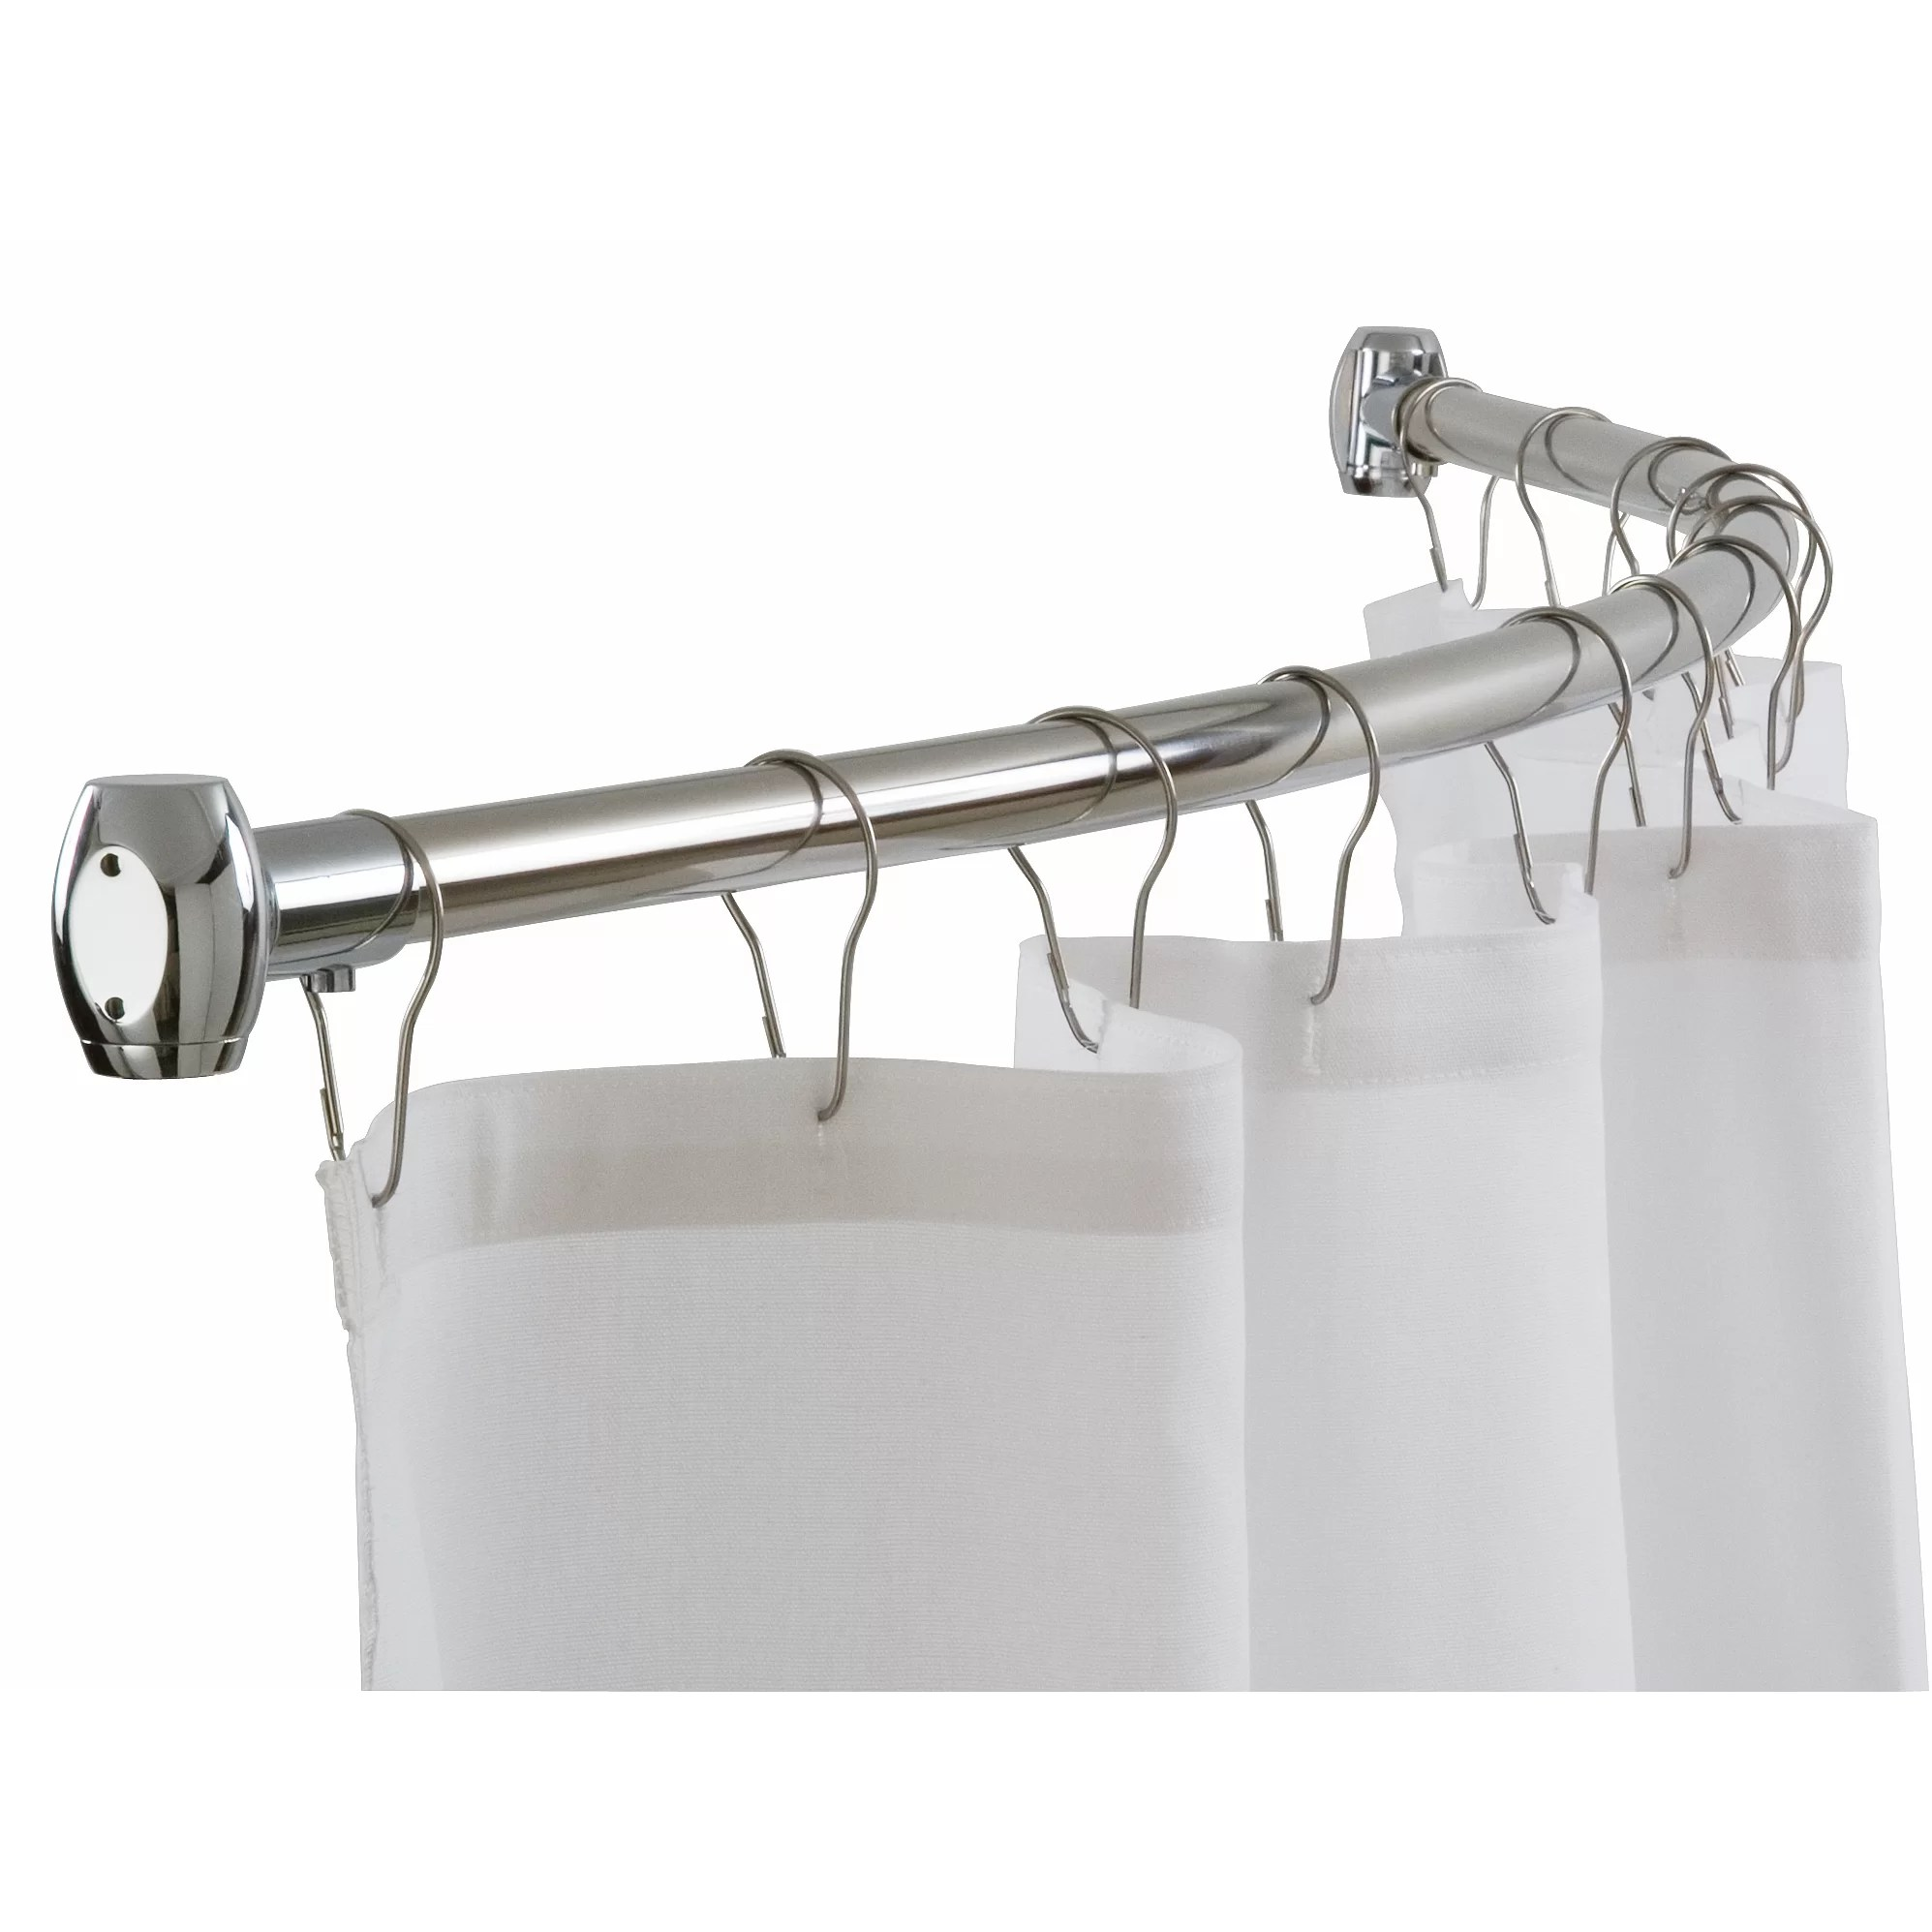 Shower Curtain Rods You'll Love Wayfair